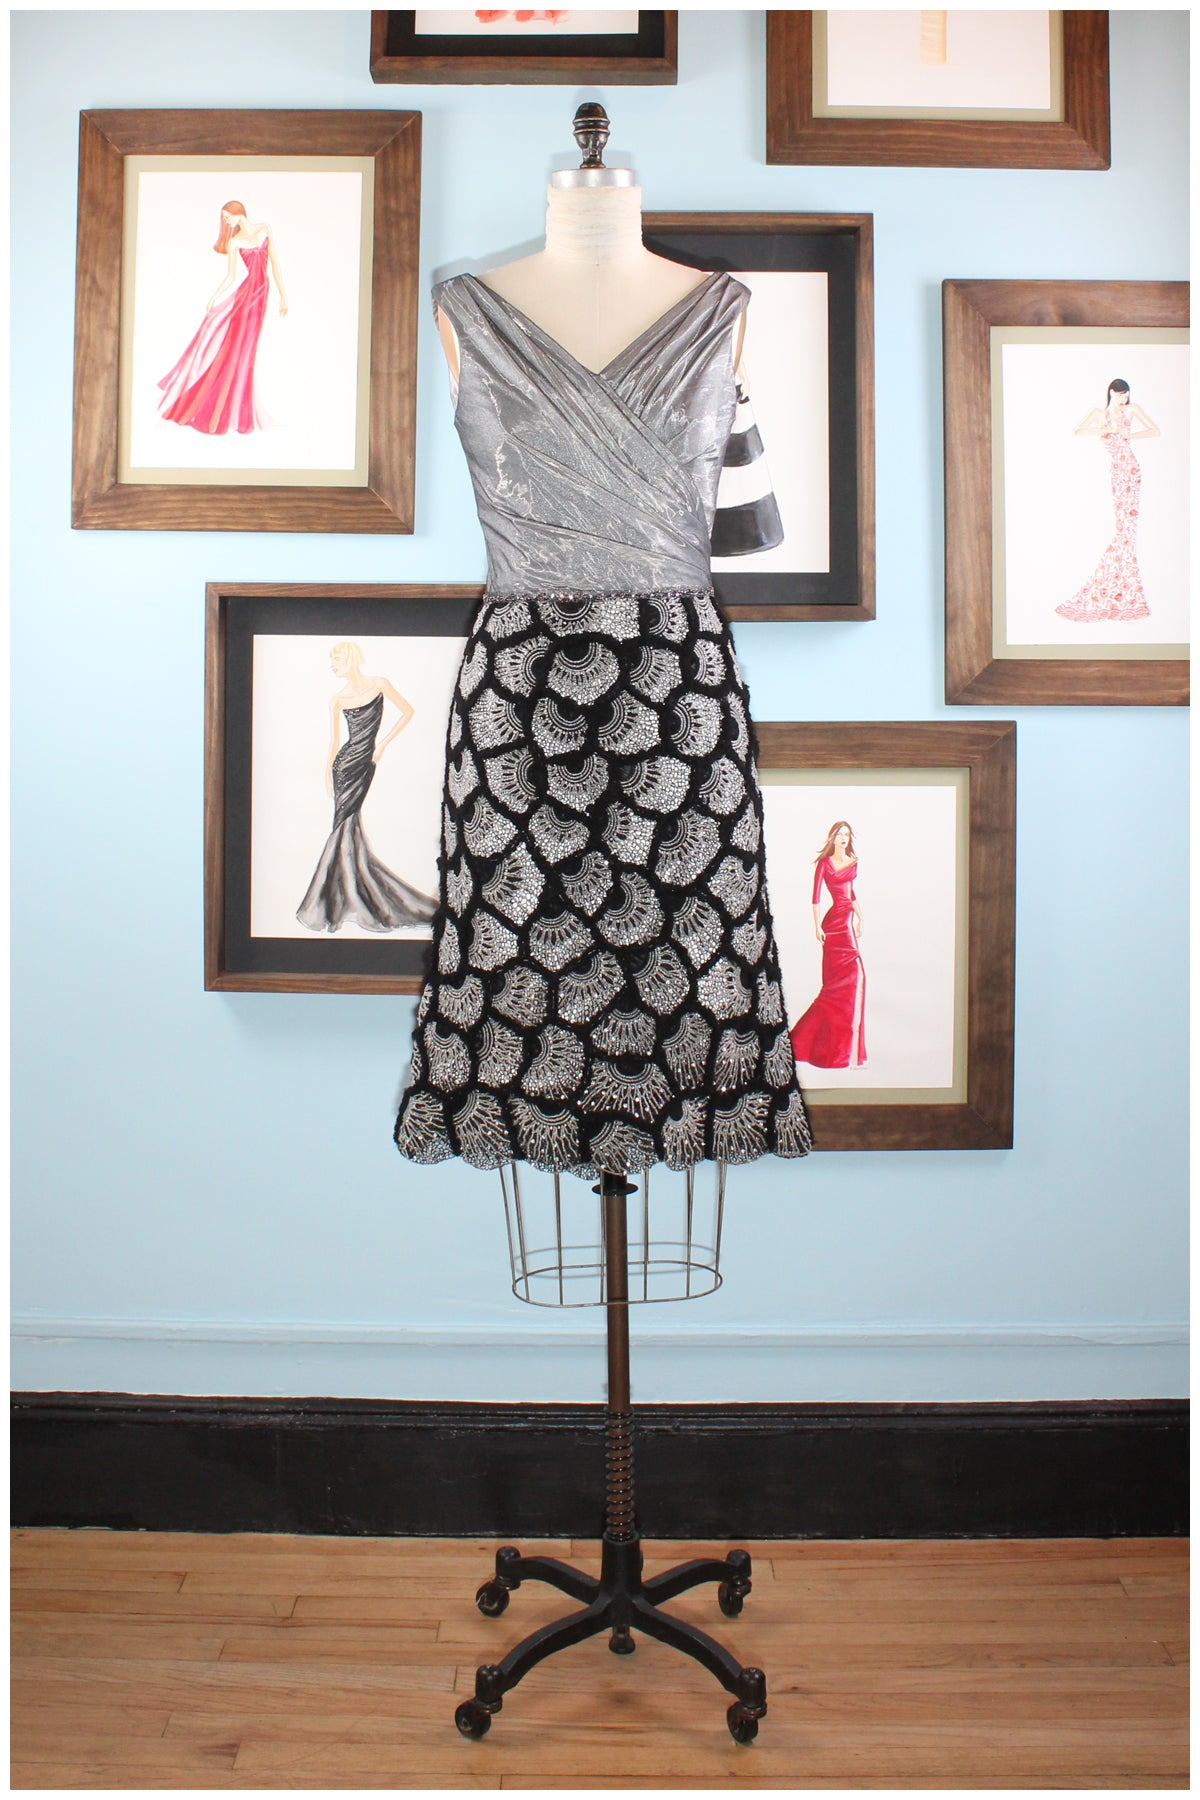 cocktail dress silver and black with crystals and embroidery  by designer german valdivia